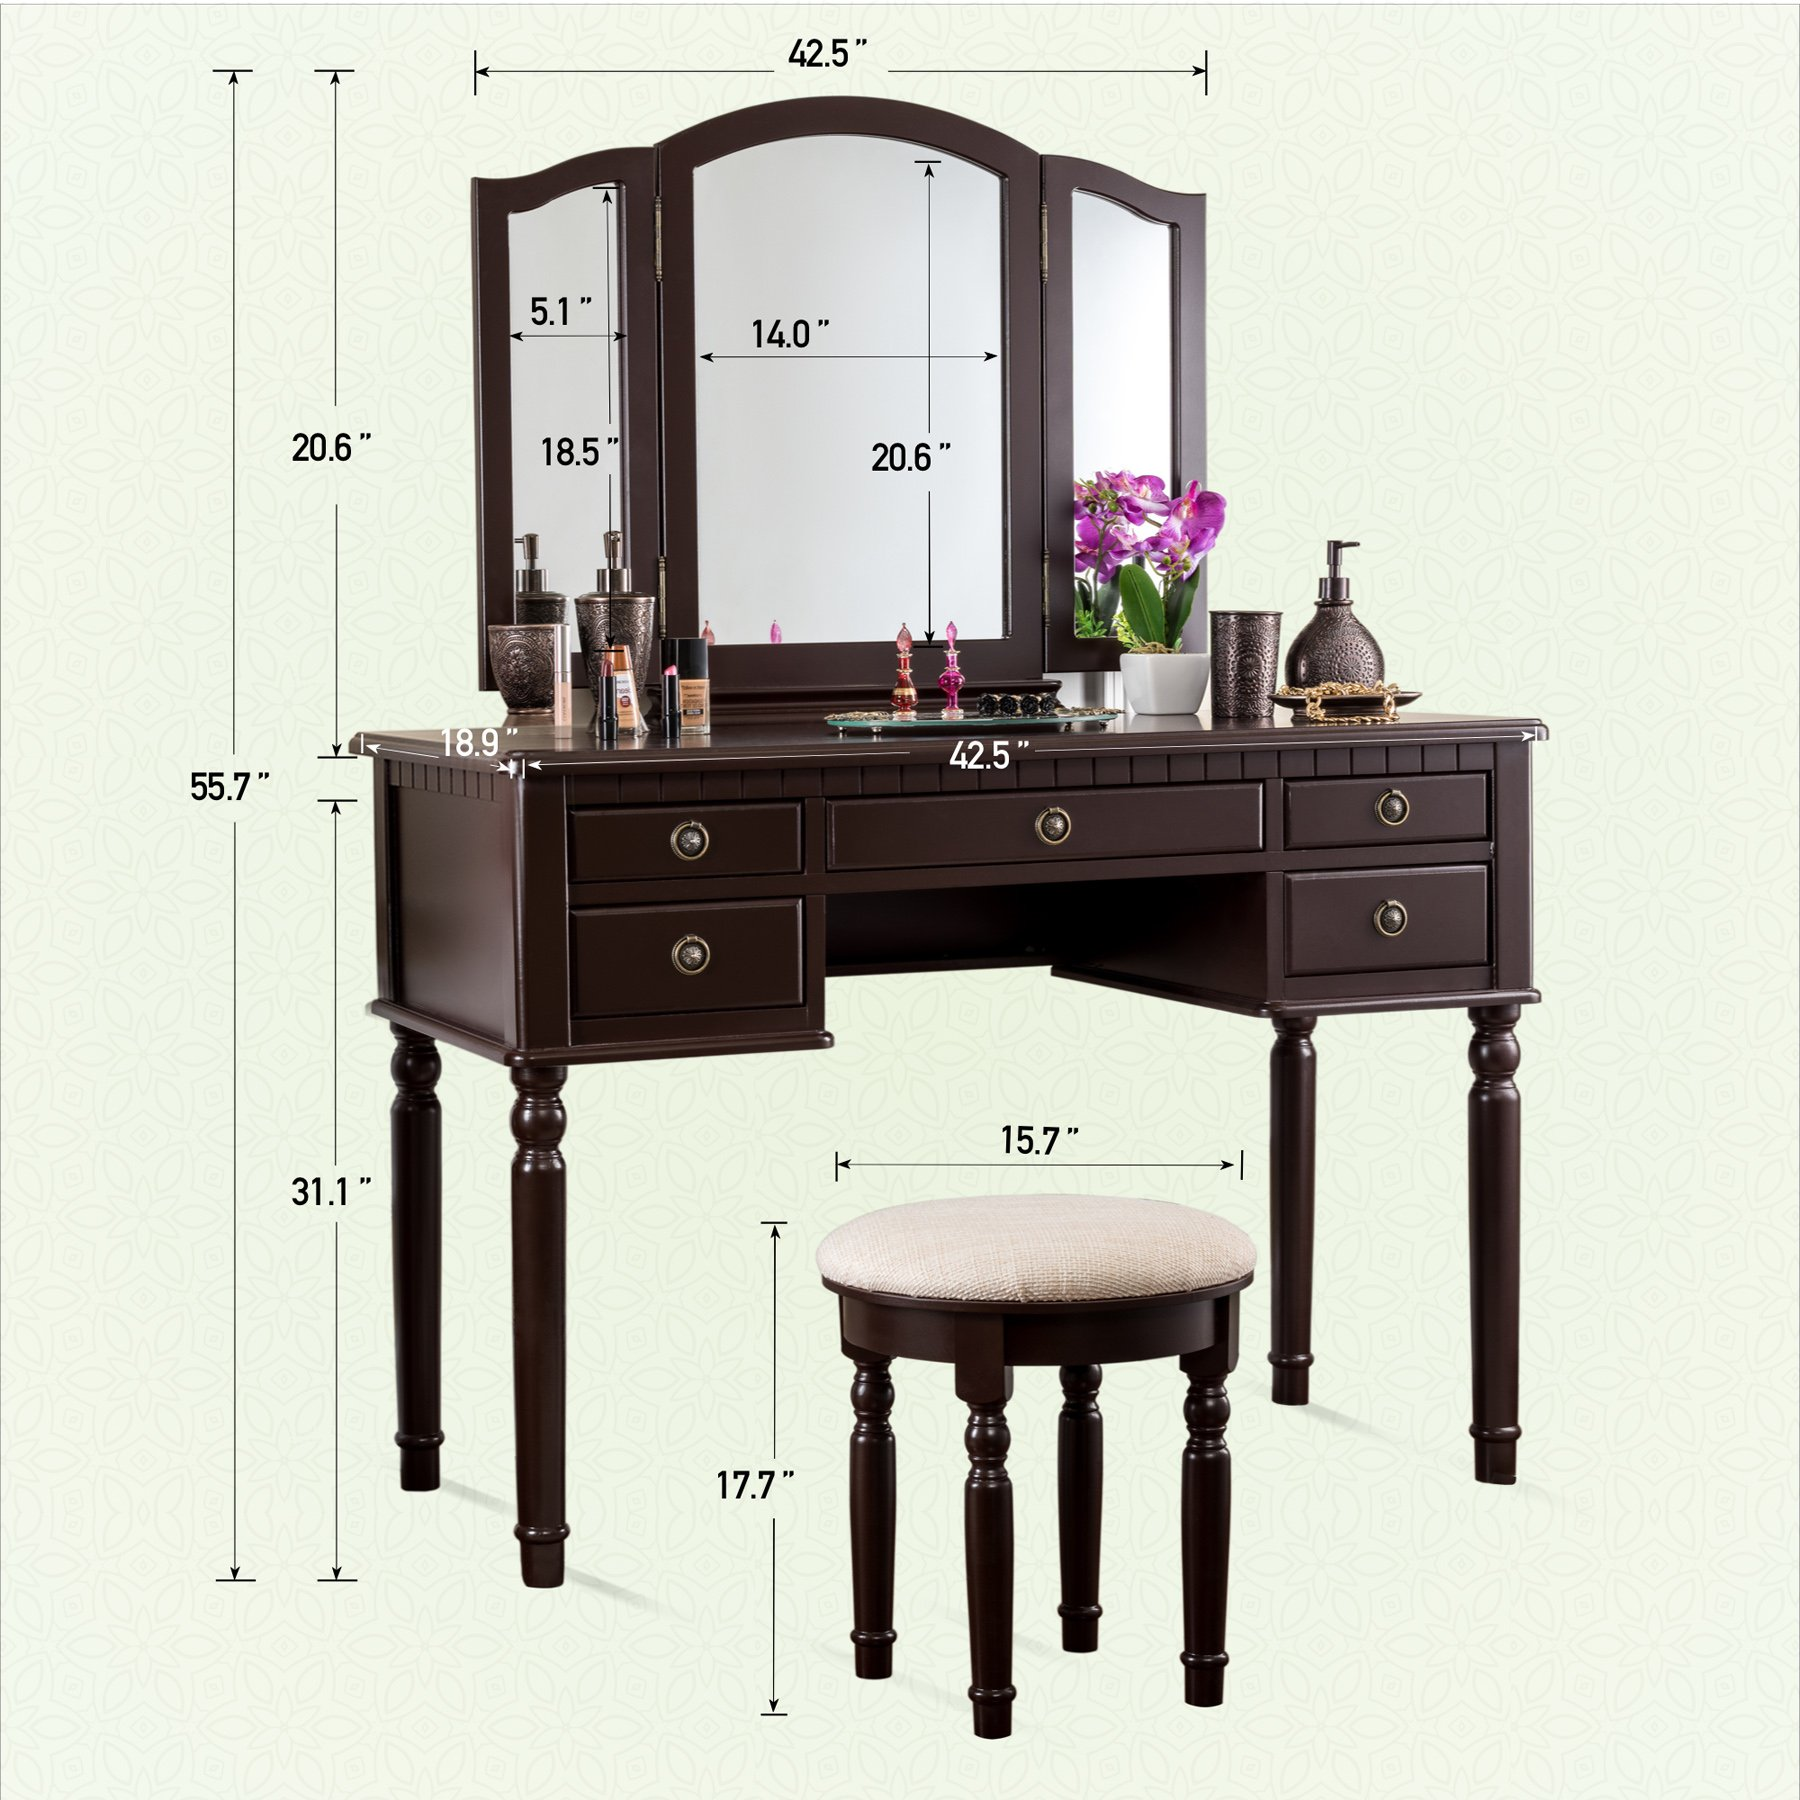 Fineboard Dressing Set with Stool Beauty Station Makeup Table Three Mirror Vanity Set, 5 Organization Drawers, Brown by Fineboard (Image #4)